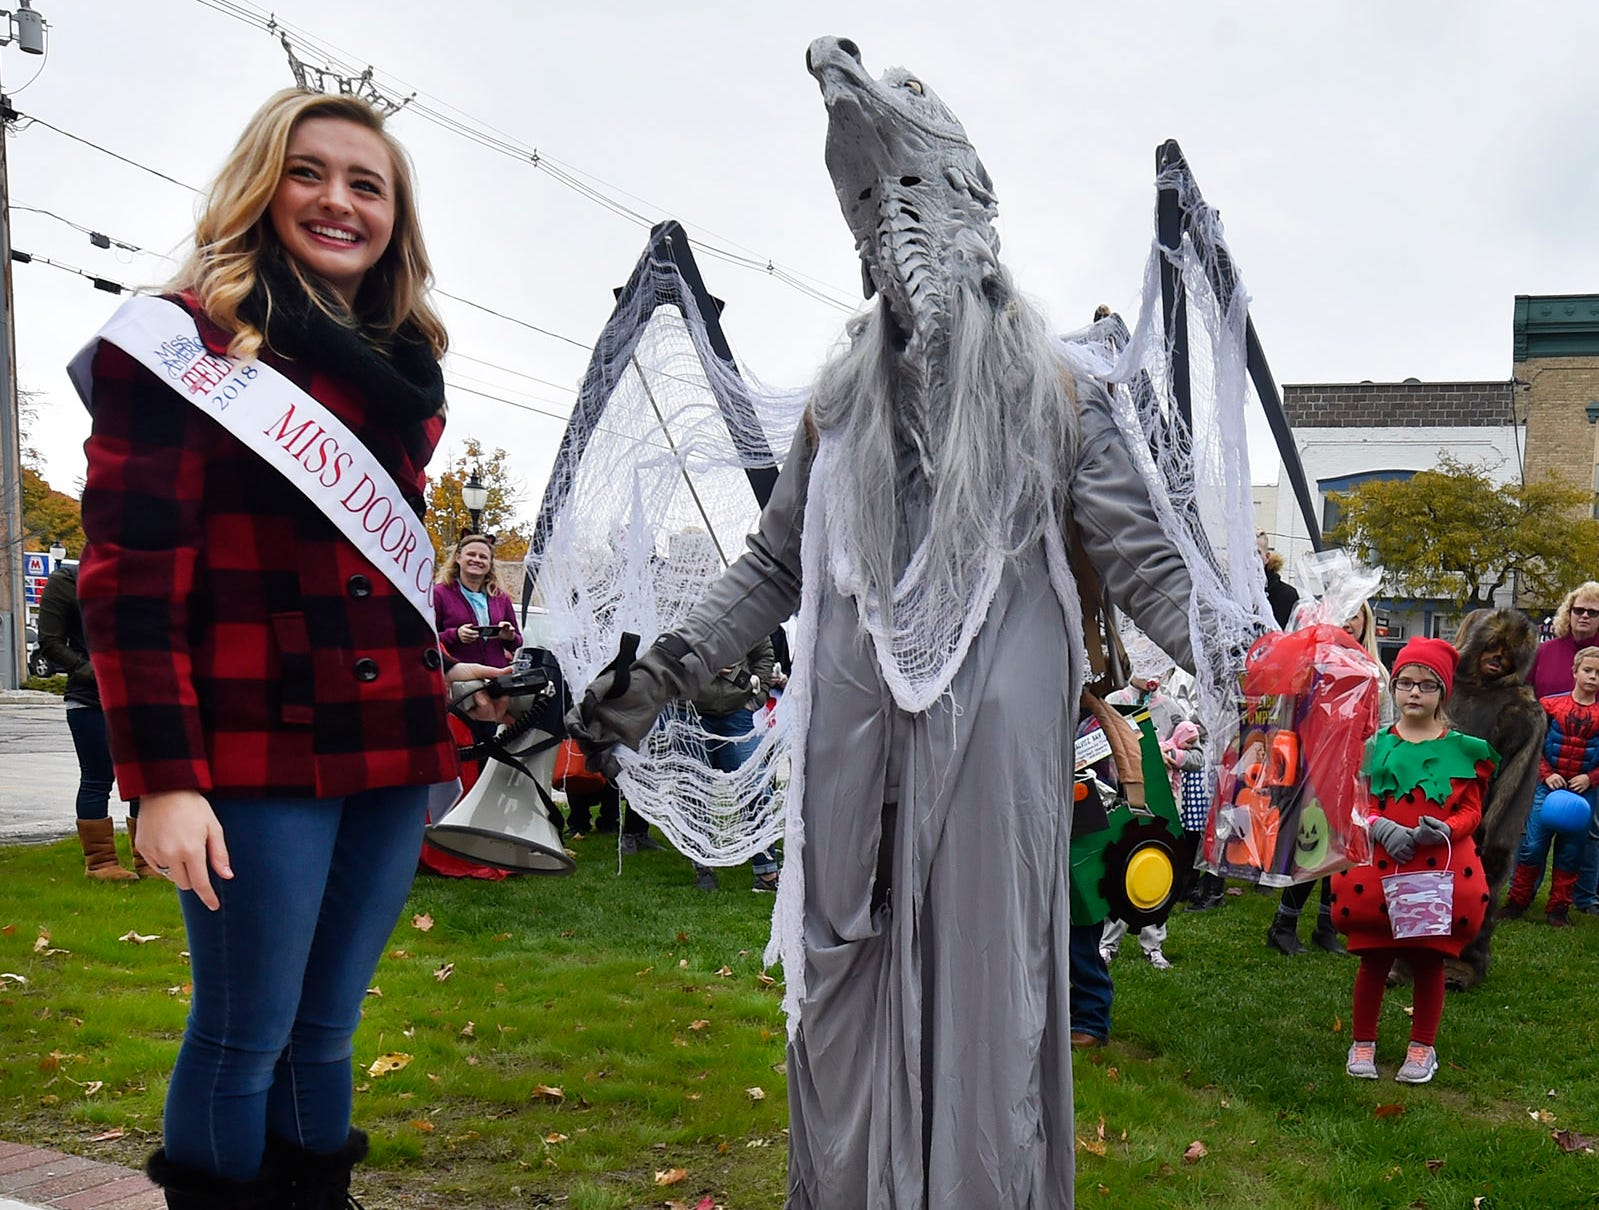 Miss Door County Outstanding Teen Ashley Ellefson hands third place to Paul Filar at the Thrills on Third costume parade on Saturday, Oct. 27, 2018, in Sturgeon Bay. Tina M. Gohr/USA TODAY NETWORK-Wisconsin